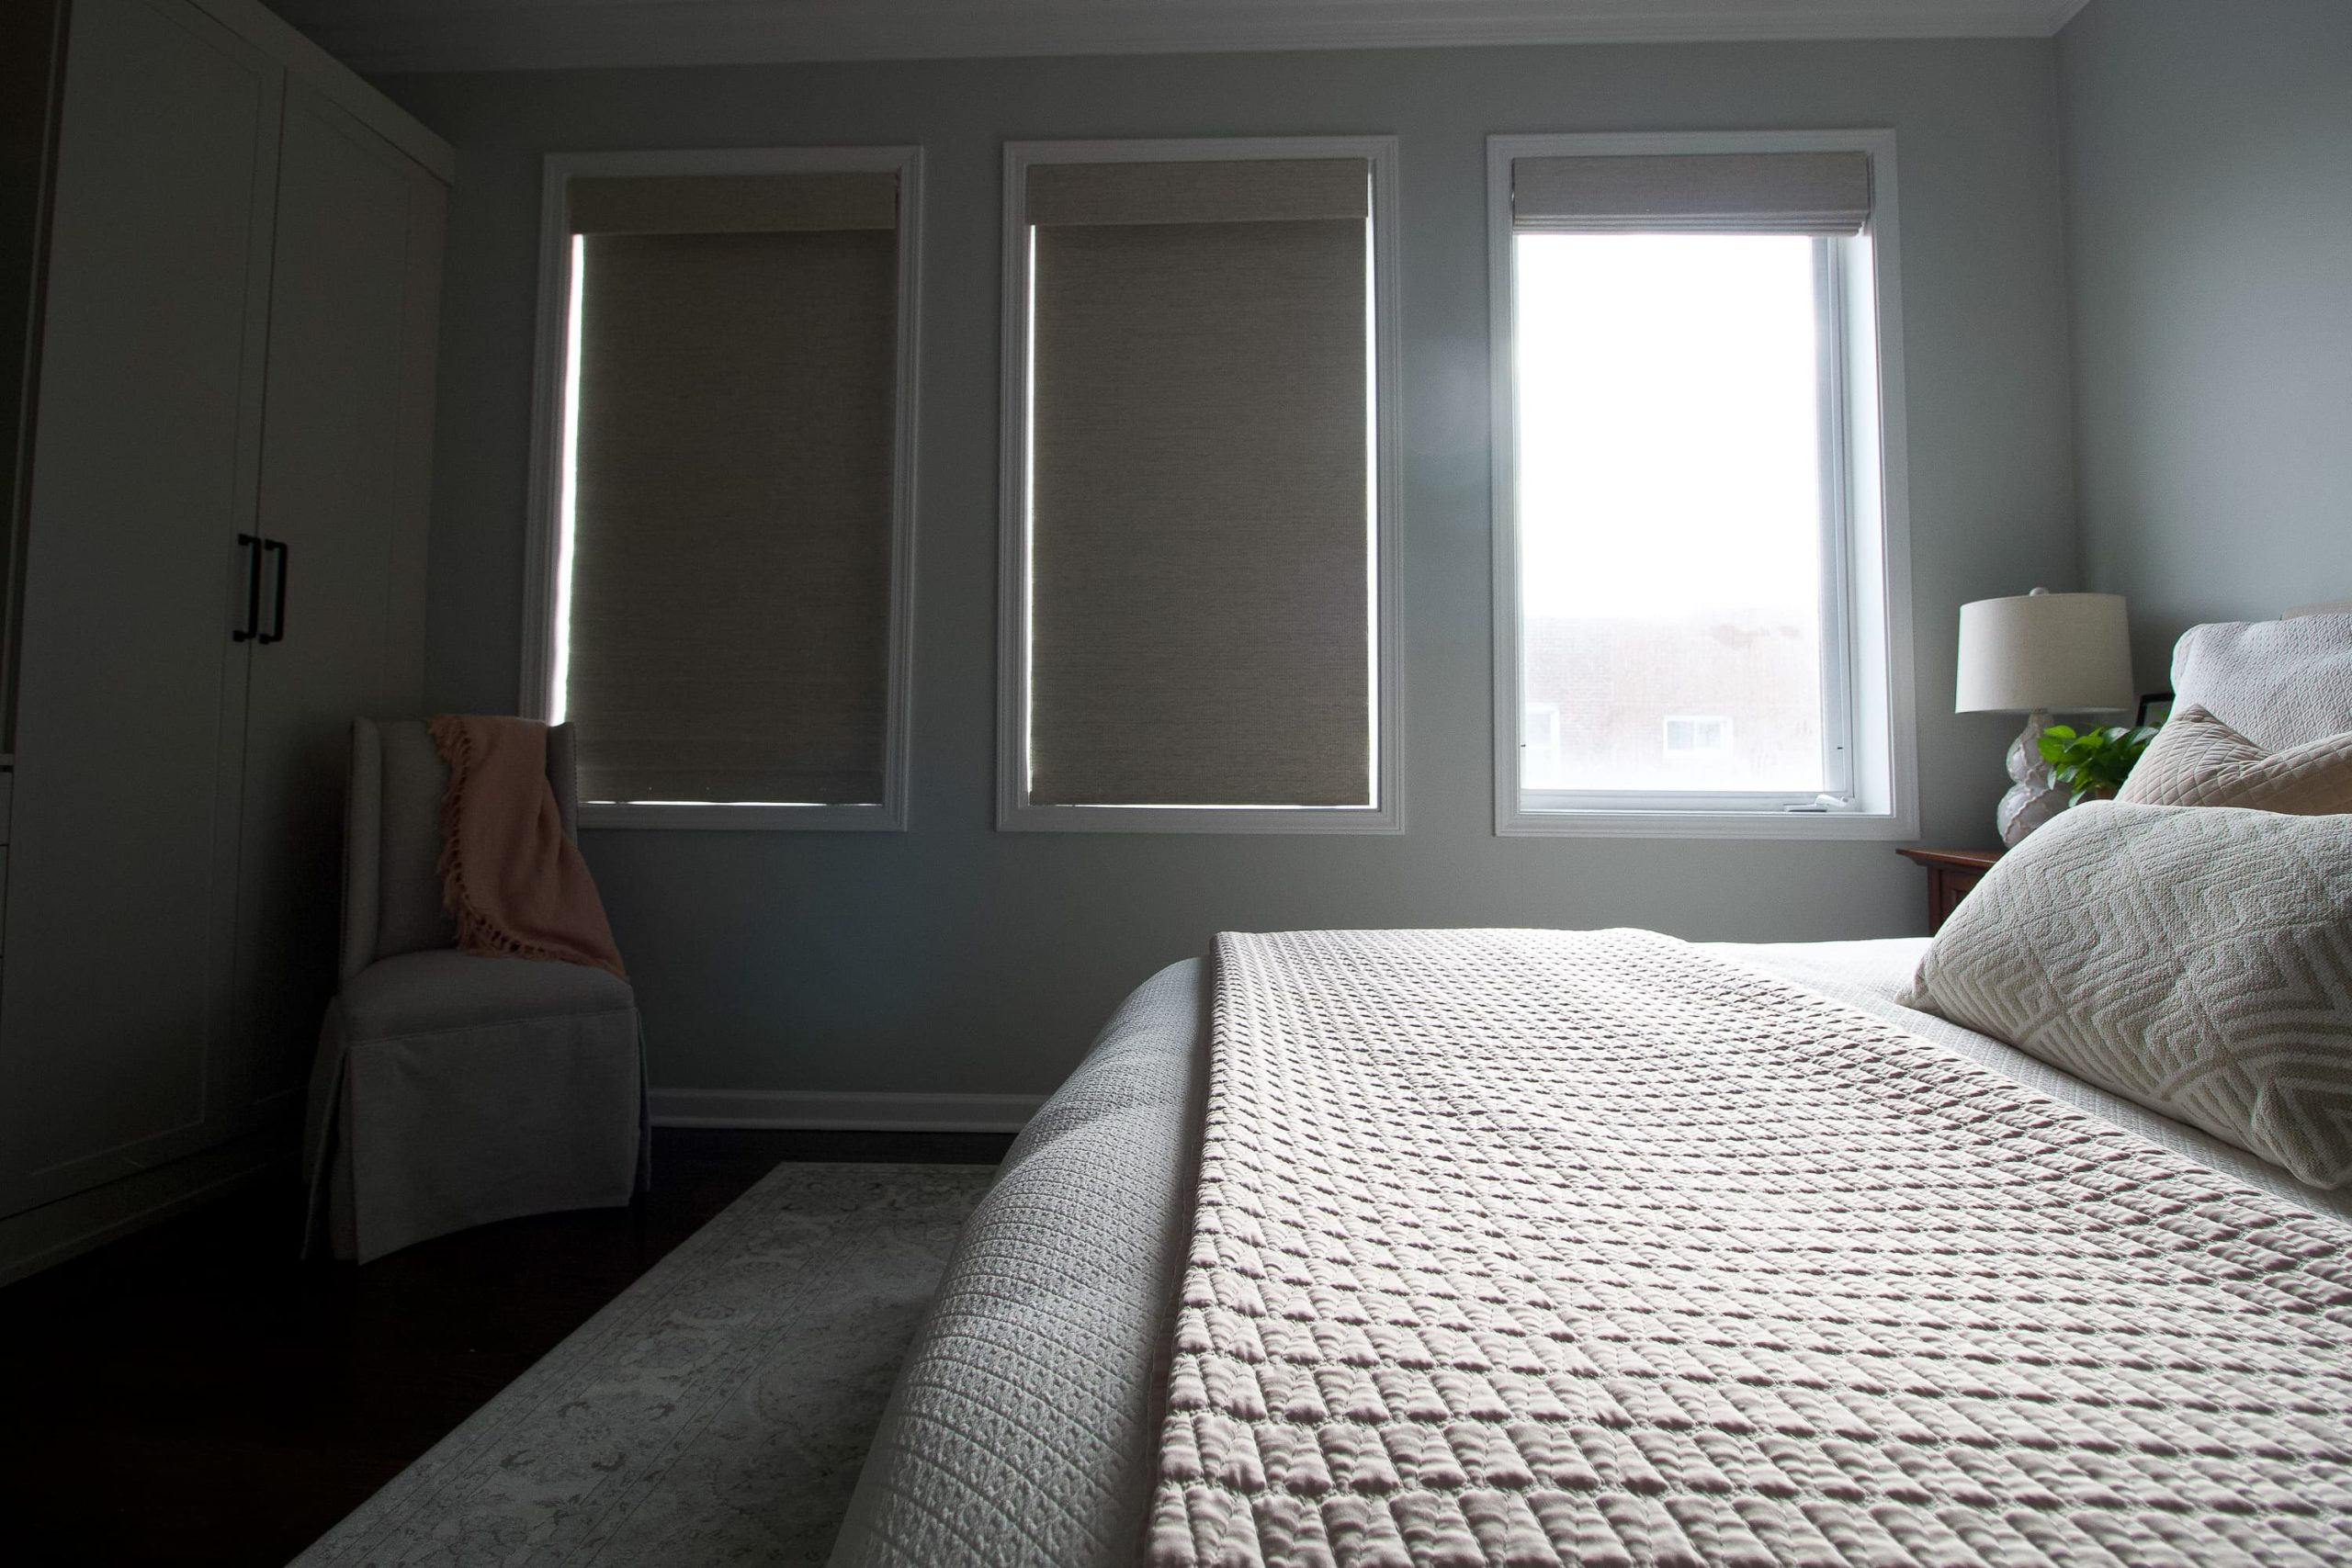 Blocking out the light with window shades